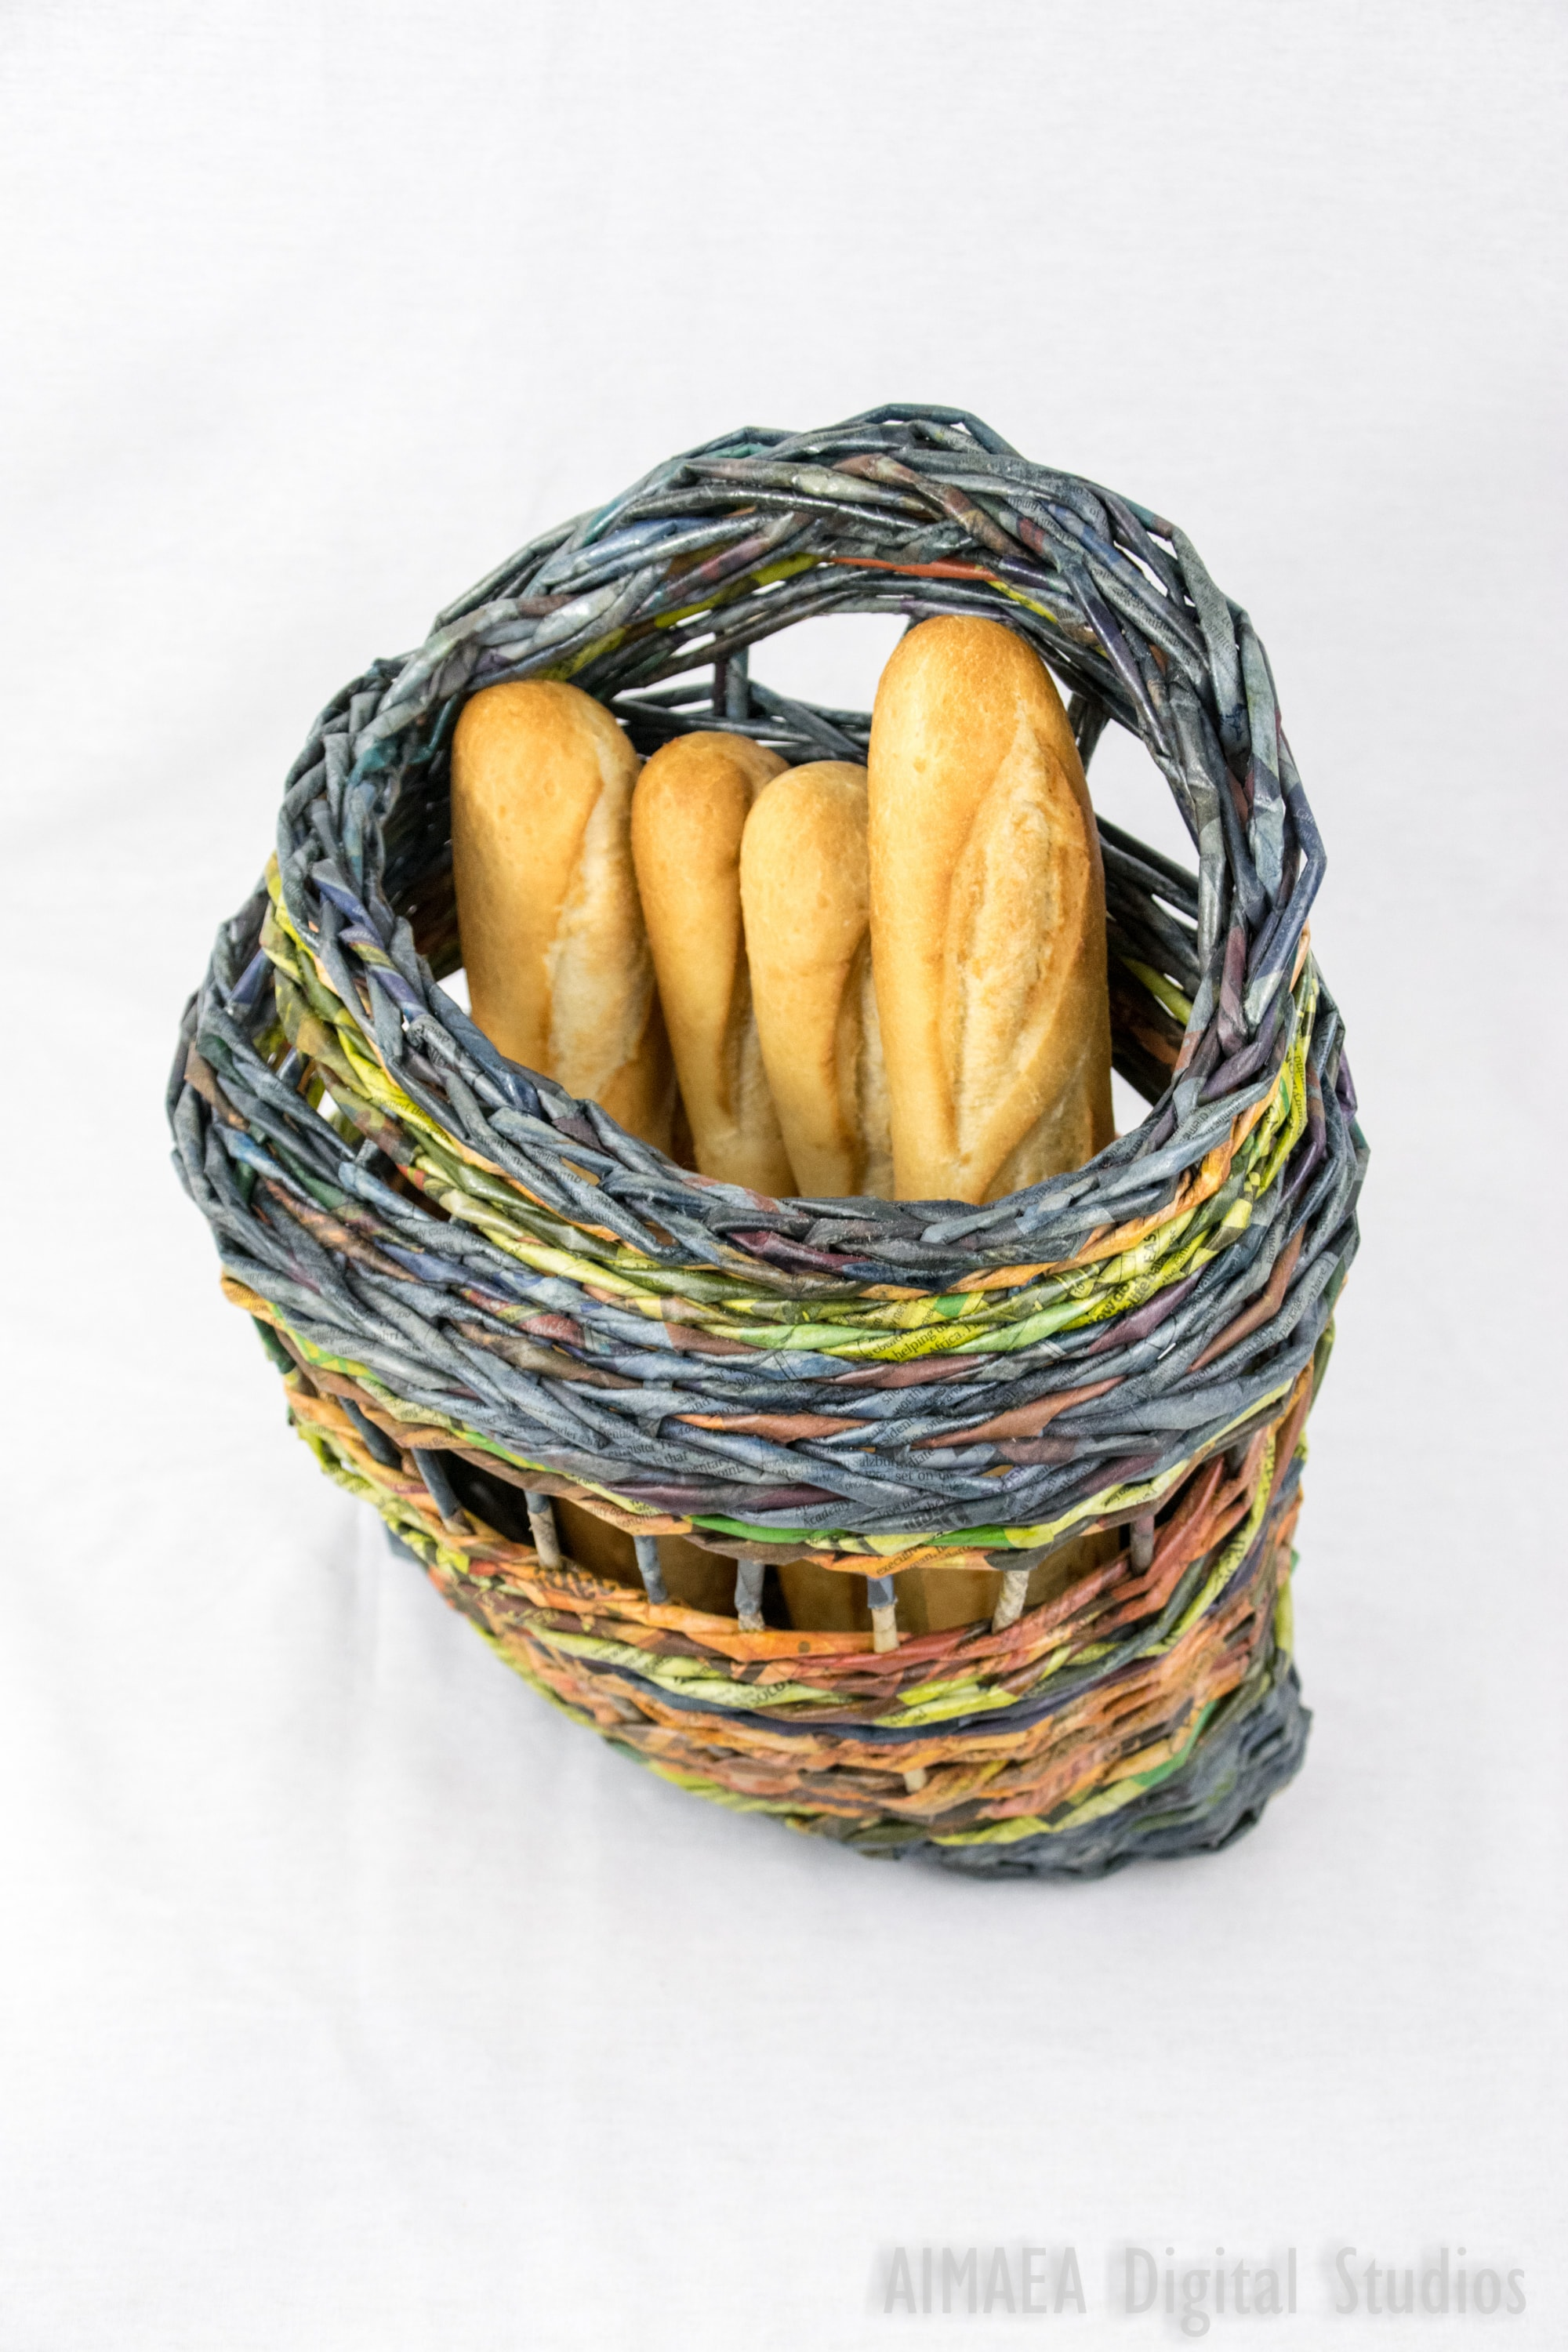 EDIGUMI Bread Basket or Bread Holder